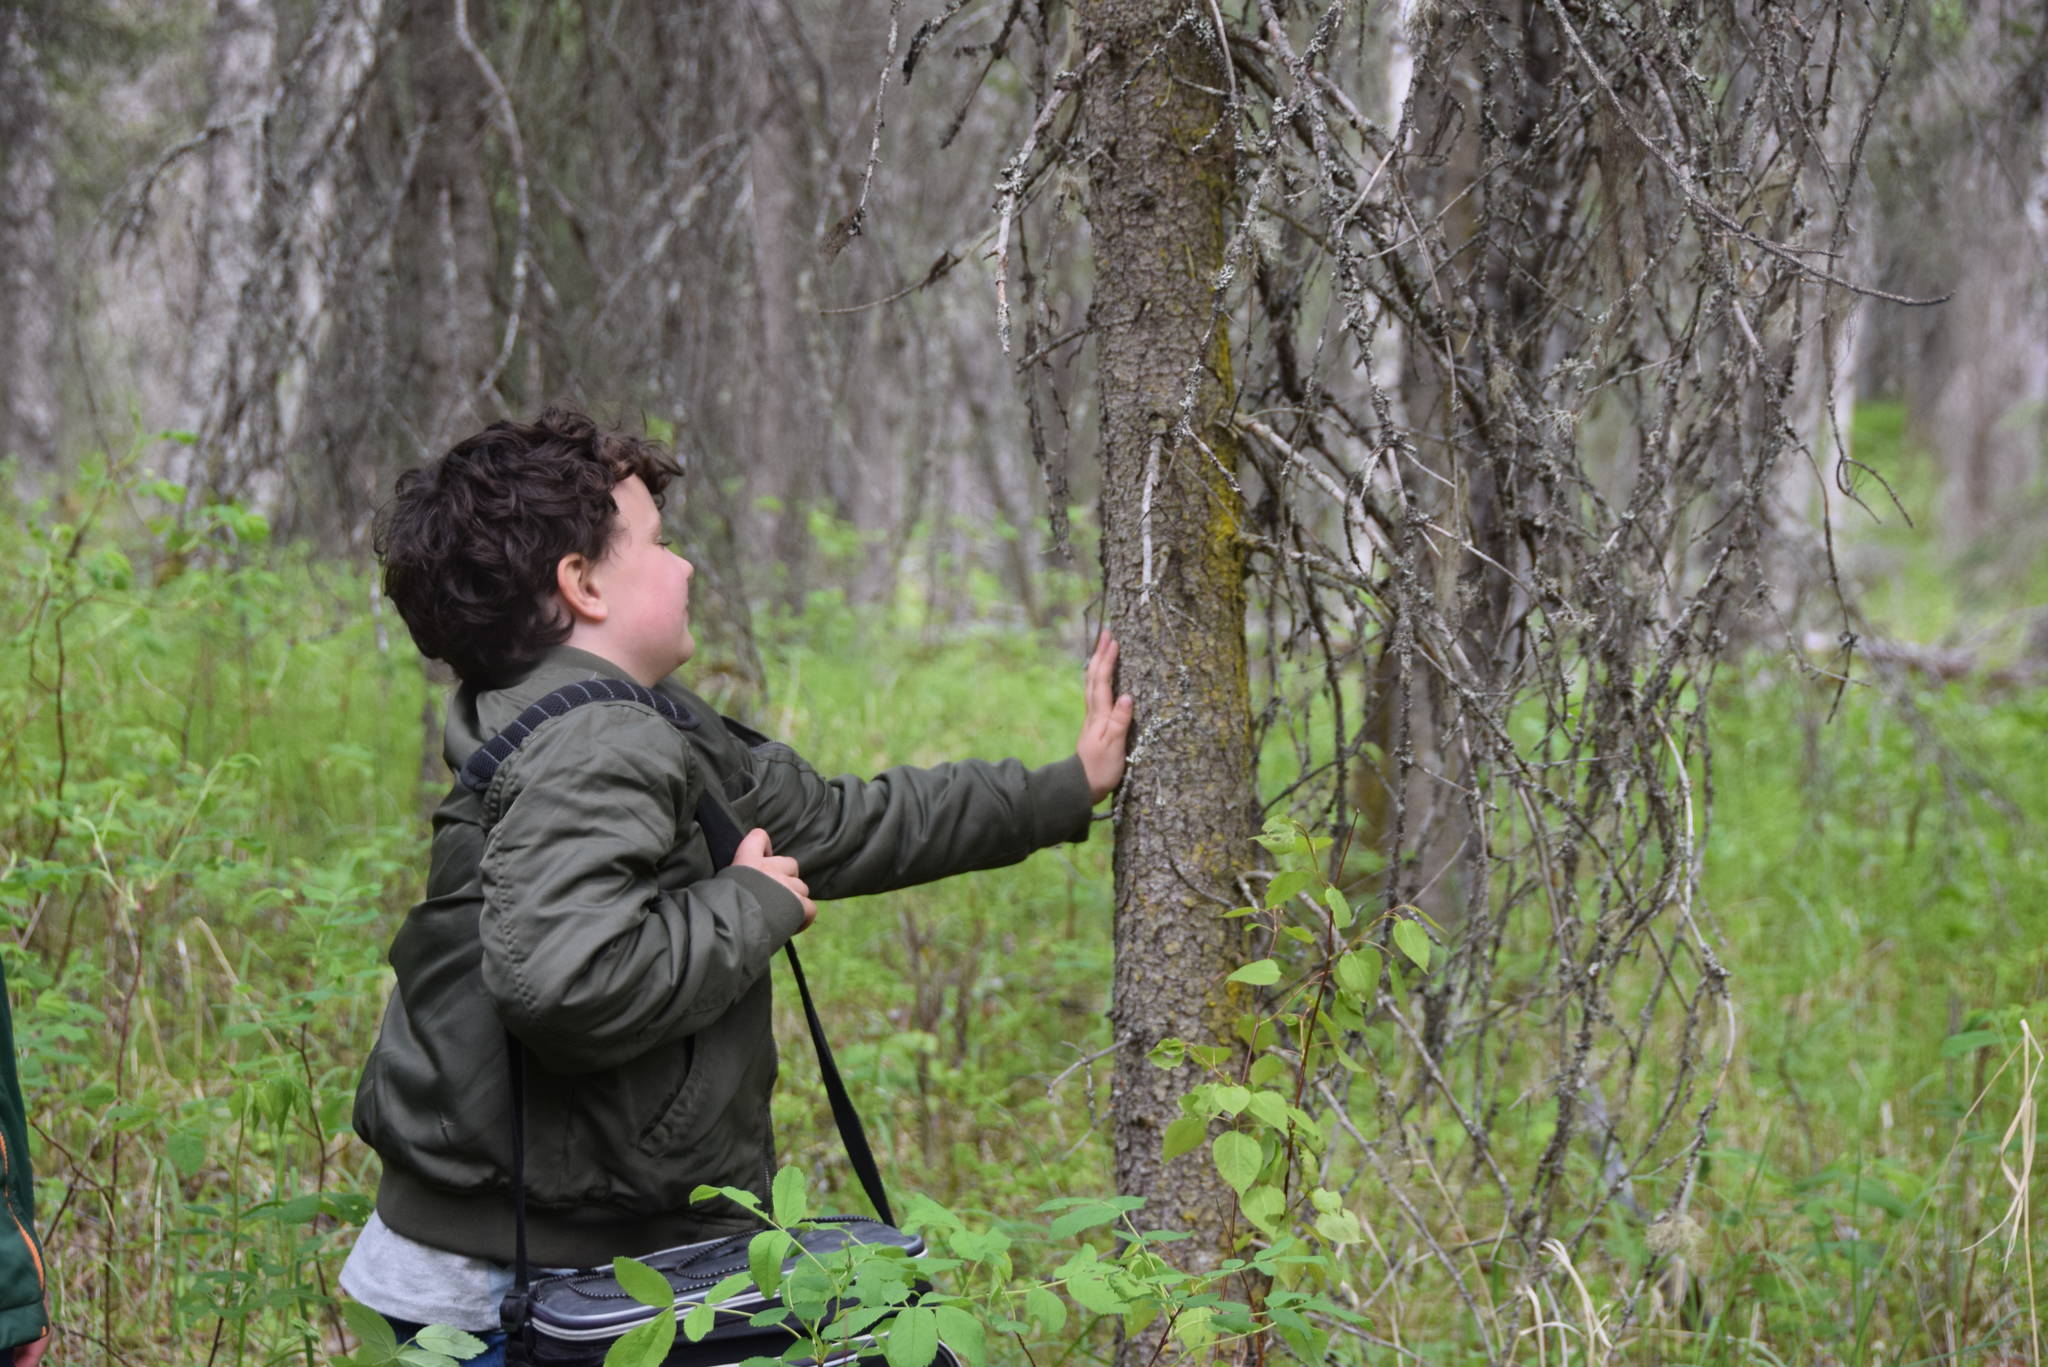 Zachariah Fay attempts to identify a tree without looking during a guided hike on Centennial Trail in the Kenai National Wildlife Refuge on June 1, 2019. (Photo by Brian Mazurek/Peninsula Clarion)